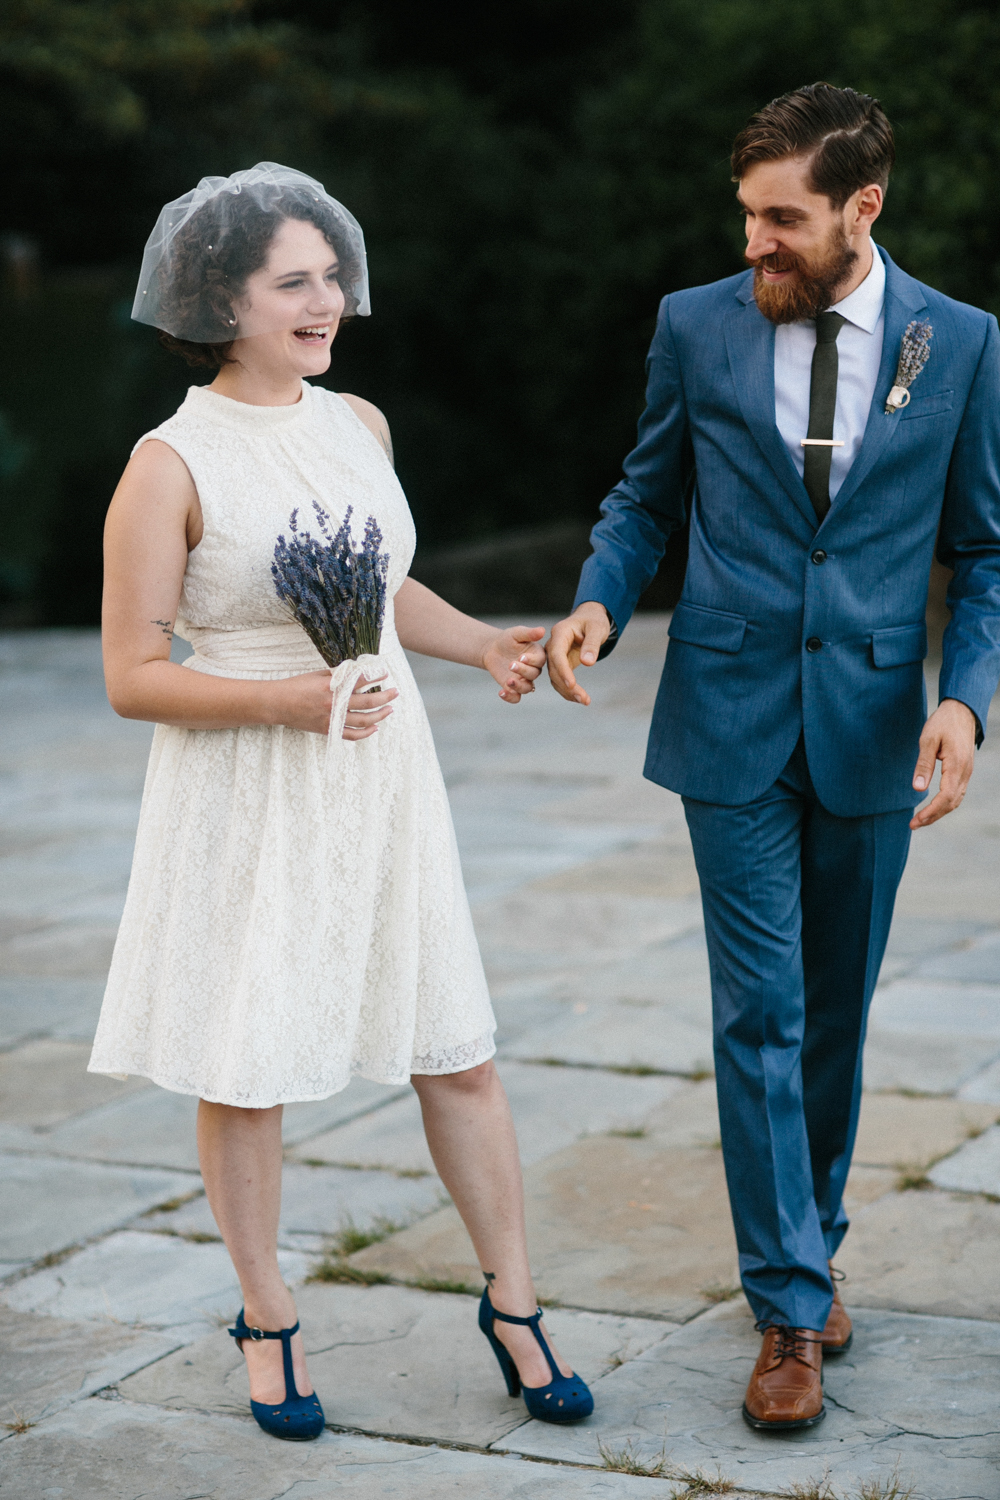 NYC Elopement outfit